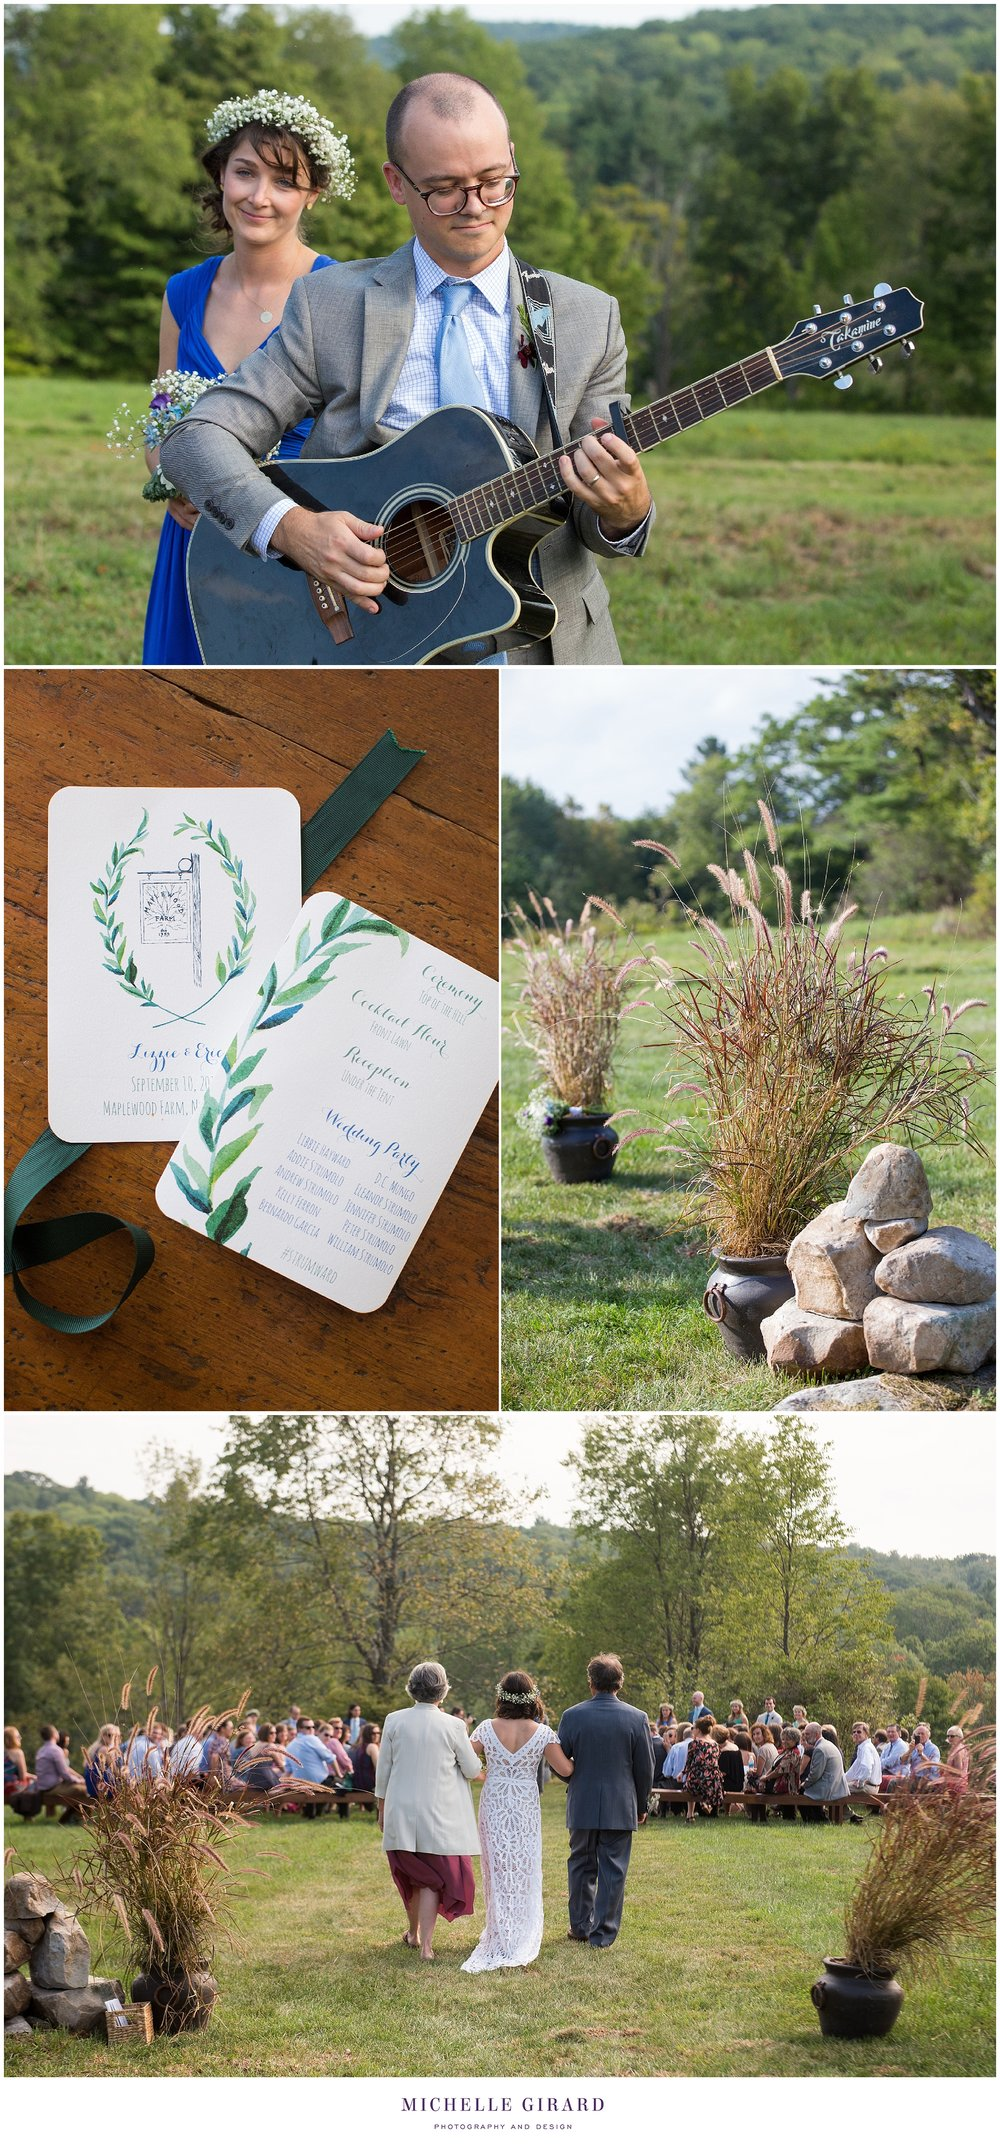 RusticWedding_MaplewoodFamilyFarm_MountainTopCeremony_MichelleGirardPhotography11.jpg